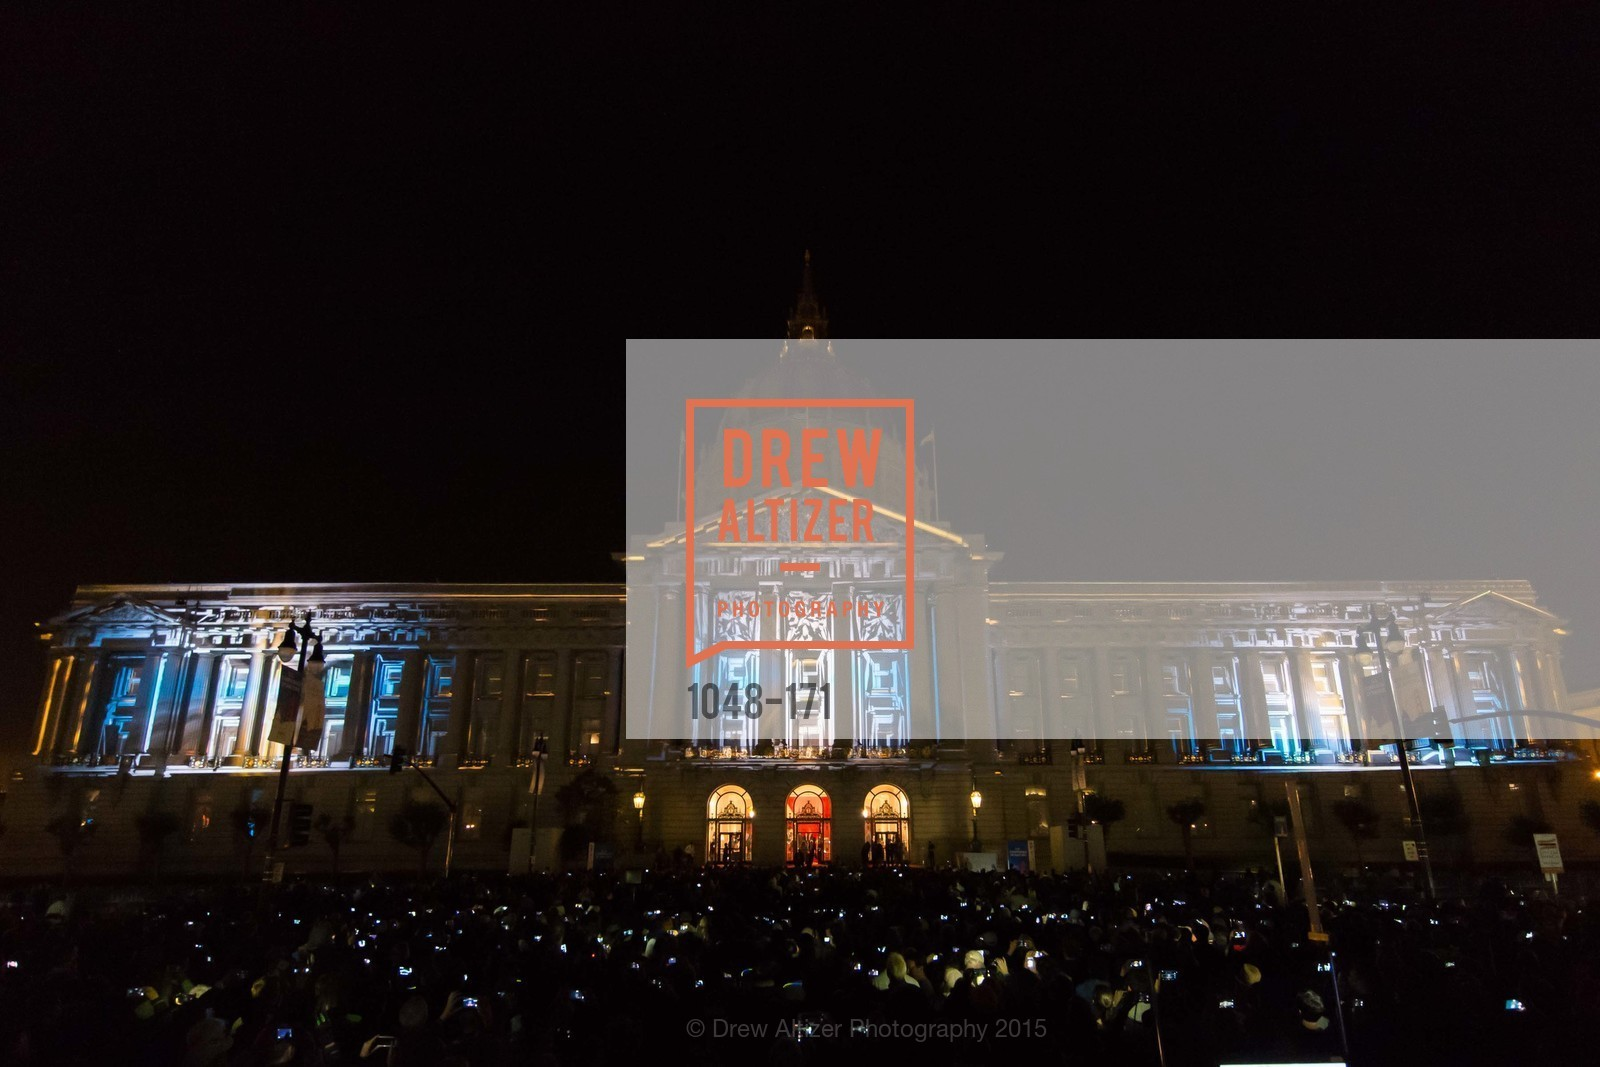 atmosphere, San Francisco City Hall Centennial Celebration, June 18th, 2015, Photo,Drew Altizer, Drew Altizer Photography, full-service agency, private events, San Francisco photographer, photographer california